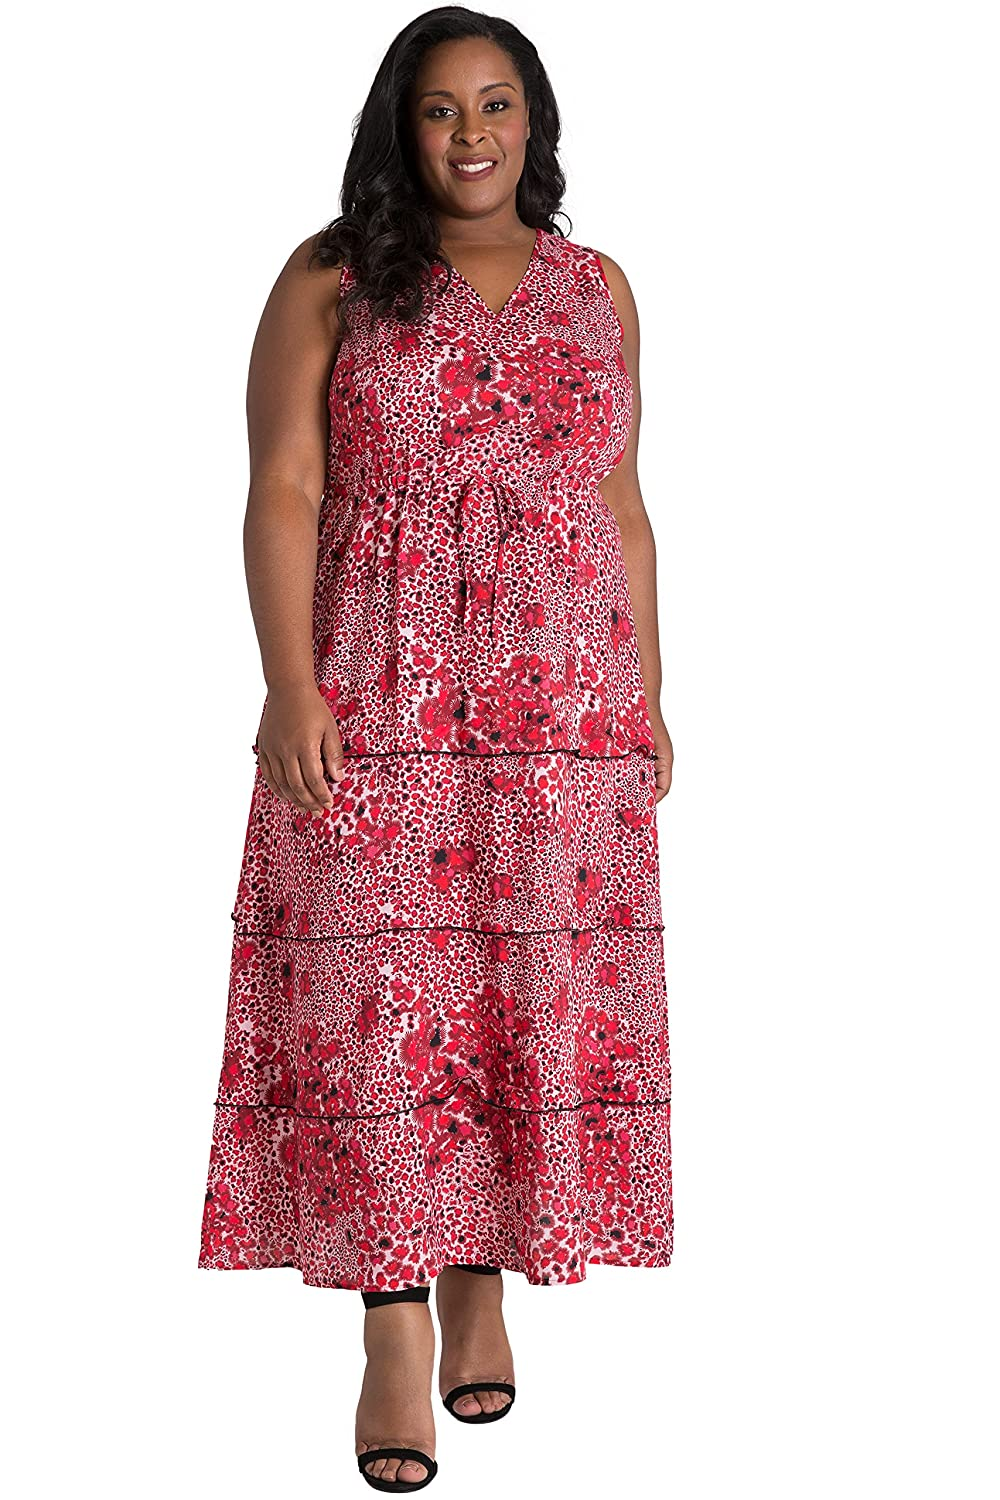 358b854c25c63 This v-neck maxi dress features a gorgeous bohemian tiered skirt and  drawstring waist for a flattering silhouette. The dress is a monochromatic  abrstract ...